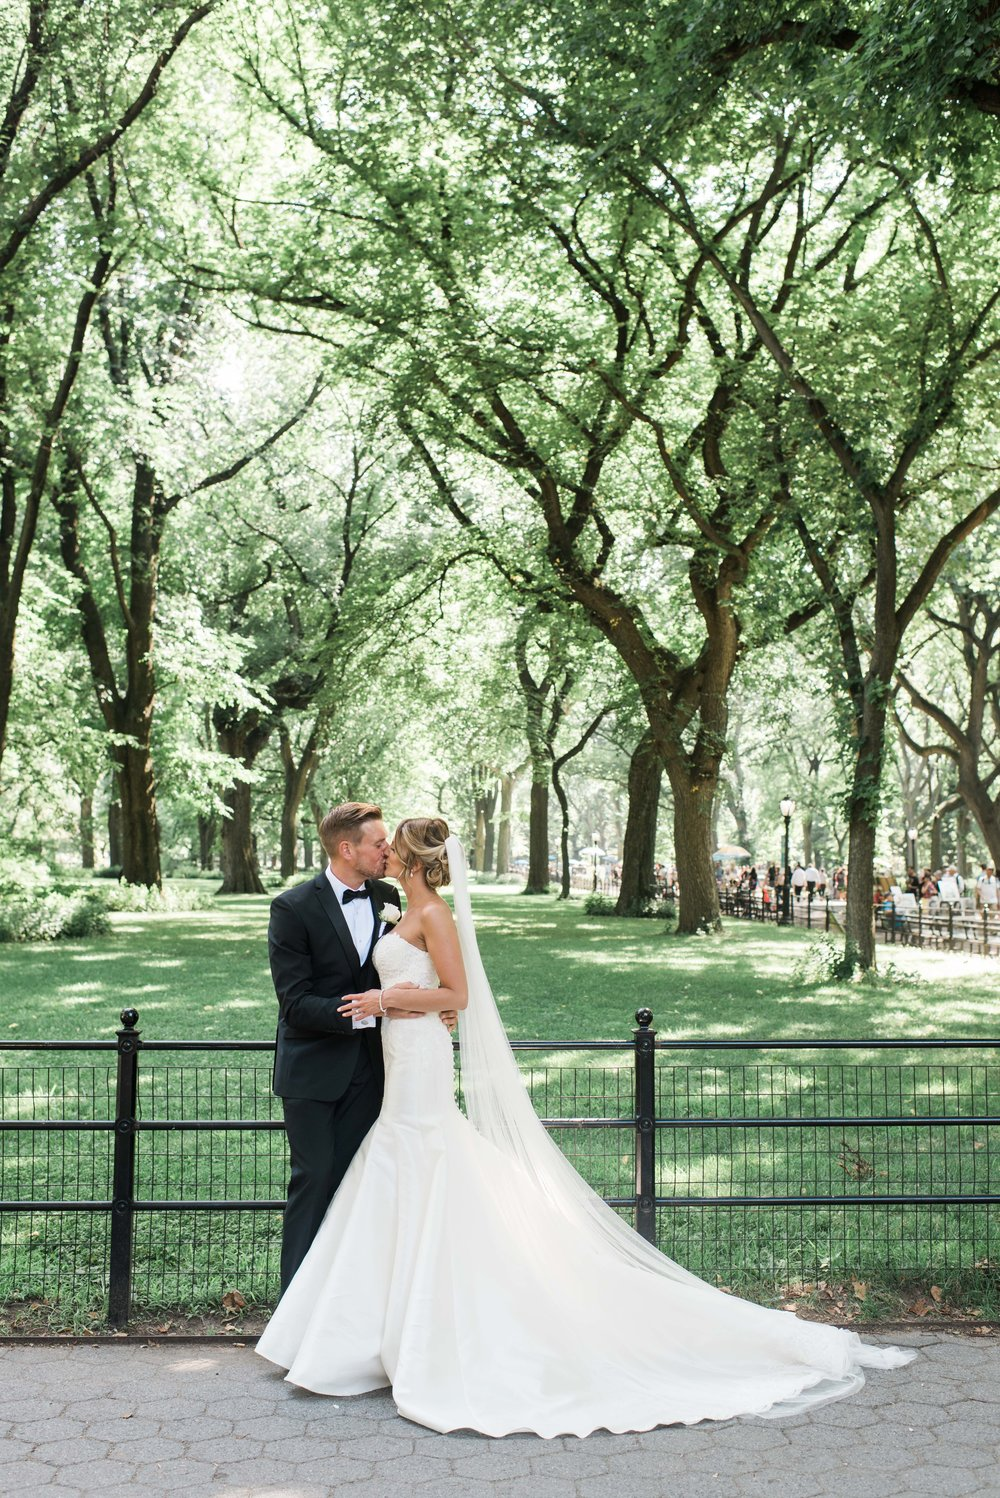 CENTRAL PARK ELOPMENT, BRIDE AND GROOM, DESTINATION ELOPEMENT IN NYC, DESTINATION ELOPEMENT IN CENTRAL PARK, BRISTISH COUPLE ELOPEMENT IN NYC, CENTRAL PARK WEDDING, NEW YORK CITY WEDDING, CENTRAL PARK ELOPEMENT PHOTOGRAPHER, CENTRAL PARK WEDDING PHOTOGRAPHER, NEW YORK CITY ELOPEMENT PHOTOGRAPHER, NEW YORK CITY WEDDING PHOTOGRAPHER, BRIDE AND GROOM PORTRAIT IN CENTRAL PARK, STUNNING BRIDE AND GROOM, MARTINI LEONA, MANOLOBLAHNQ, LONG VEIL